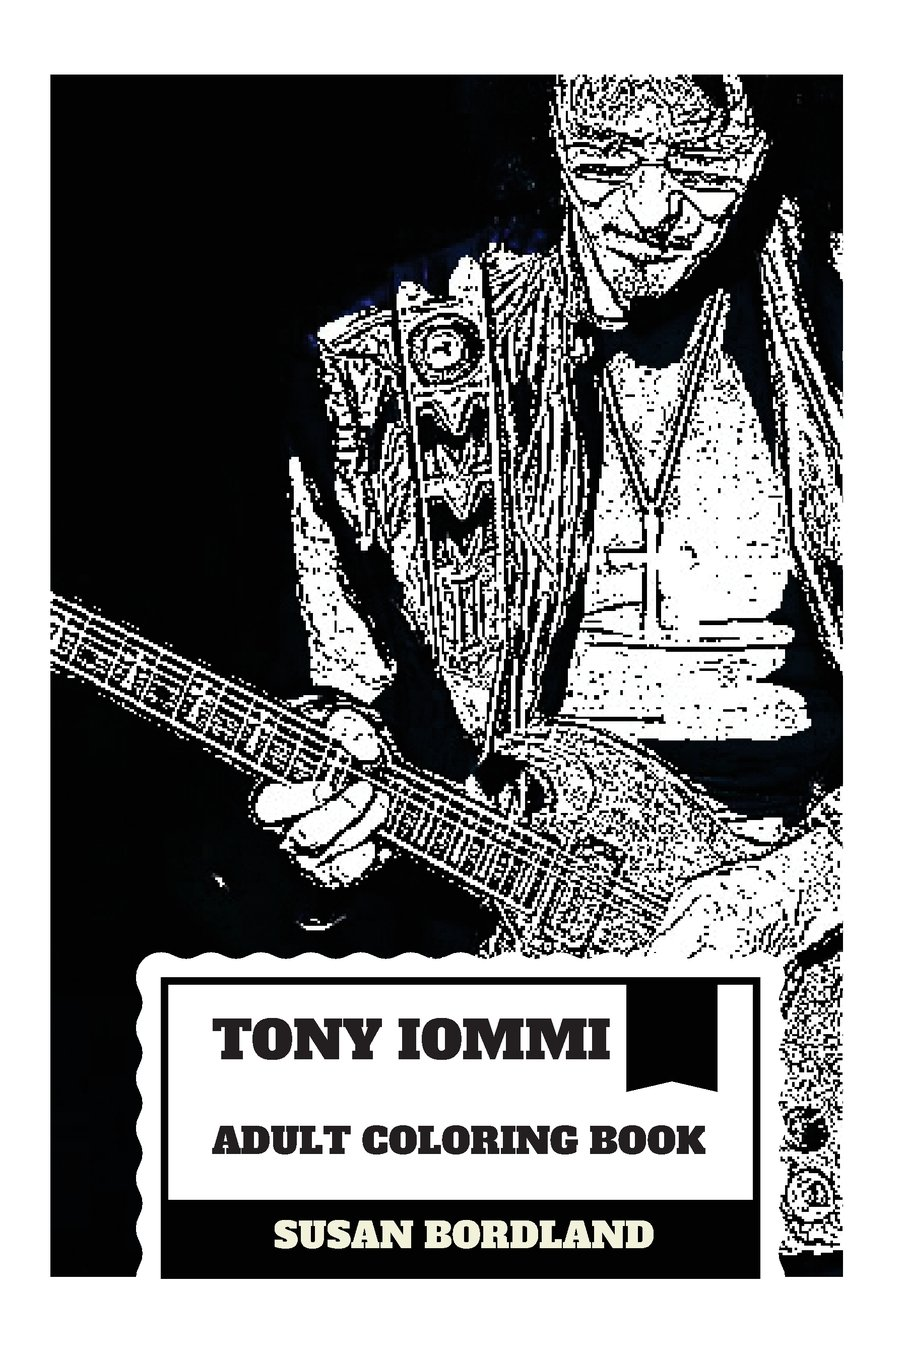 Tony Iommi Adult Coloring Book: Black Sabbath Founder and Blues Rock Guitarist, Godfather of Heavy Metal Inspired Adult Coloring Book (Tony Iommi Books) ebook